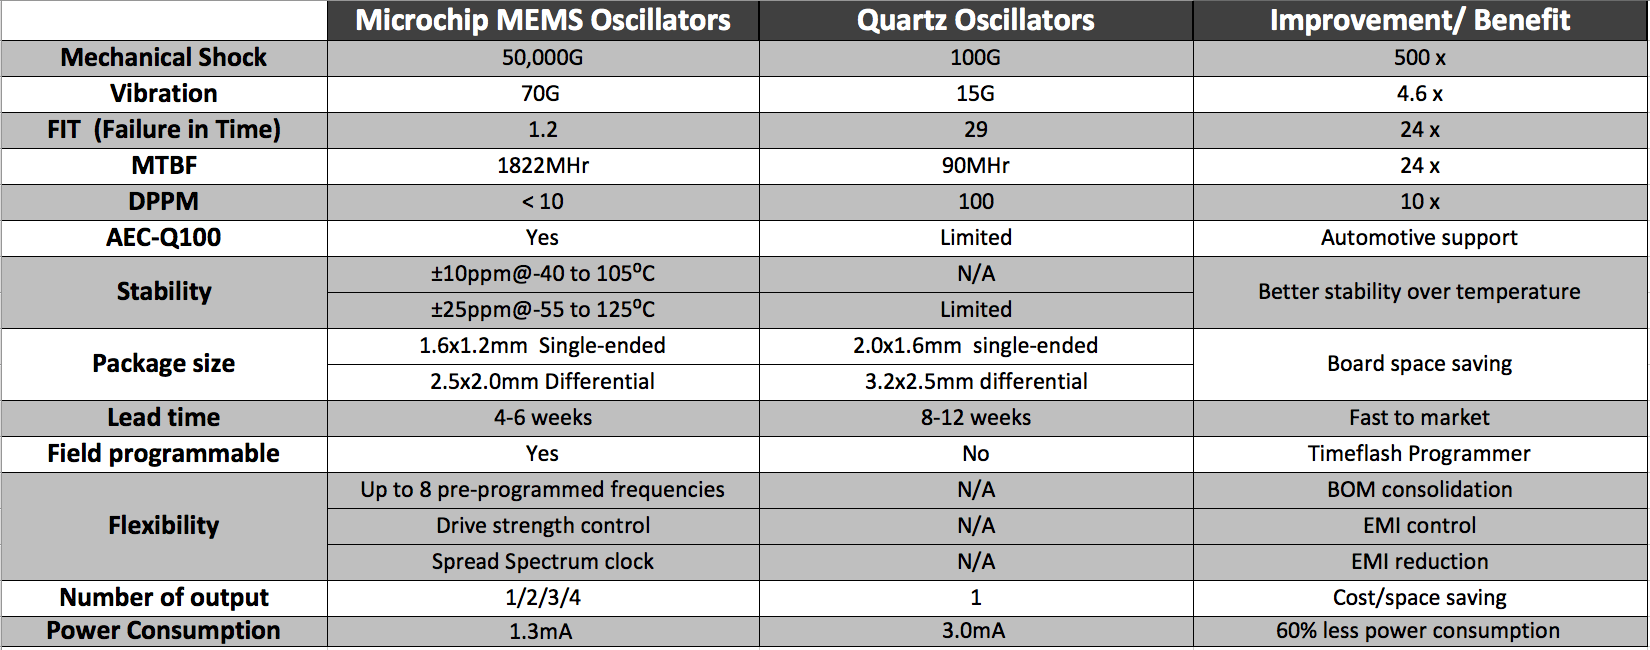 MEMS vs Quartz Comparison Table